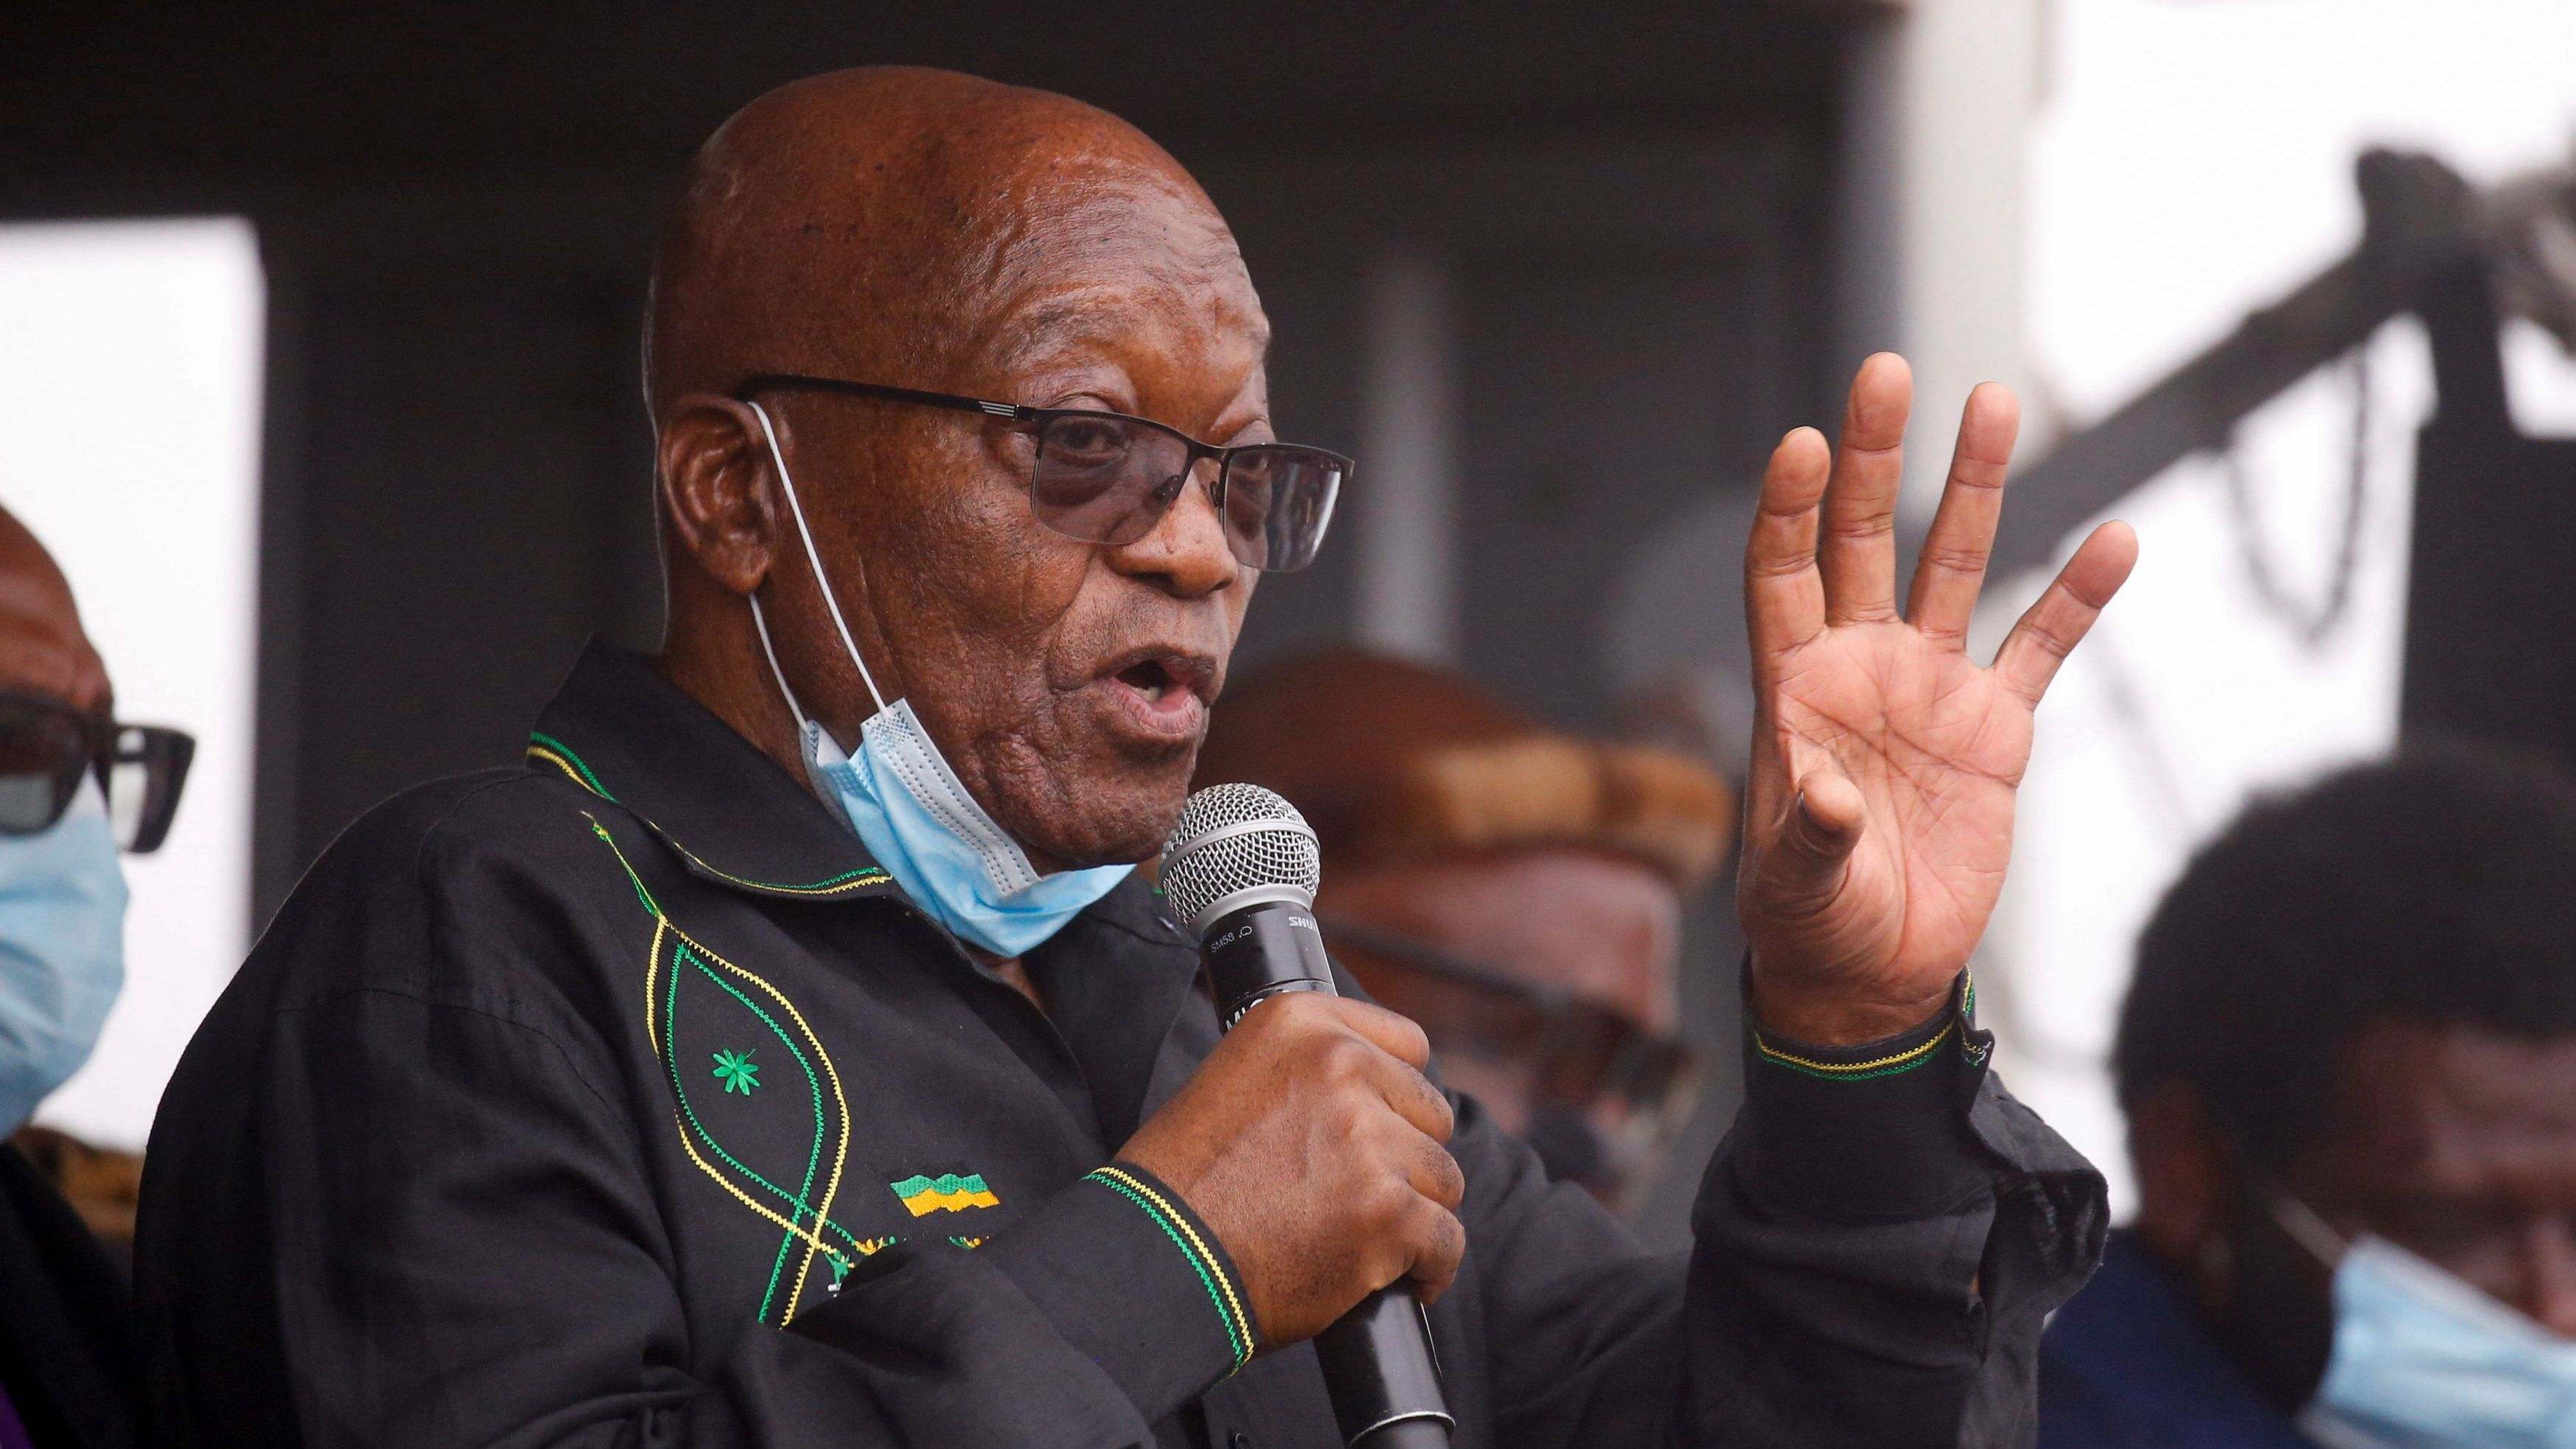 South Africa's Former President Zuma Tries to Block Arrest as Police Hold Back